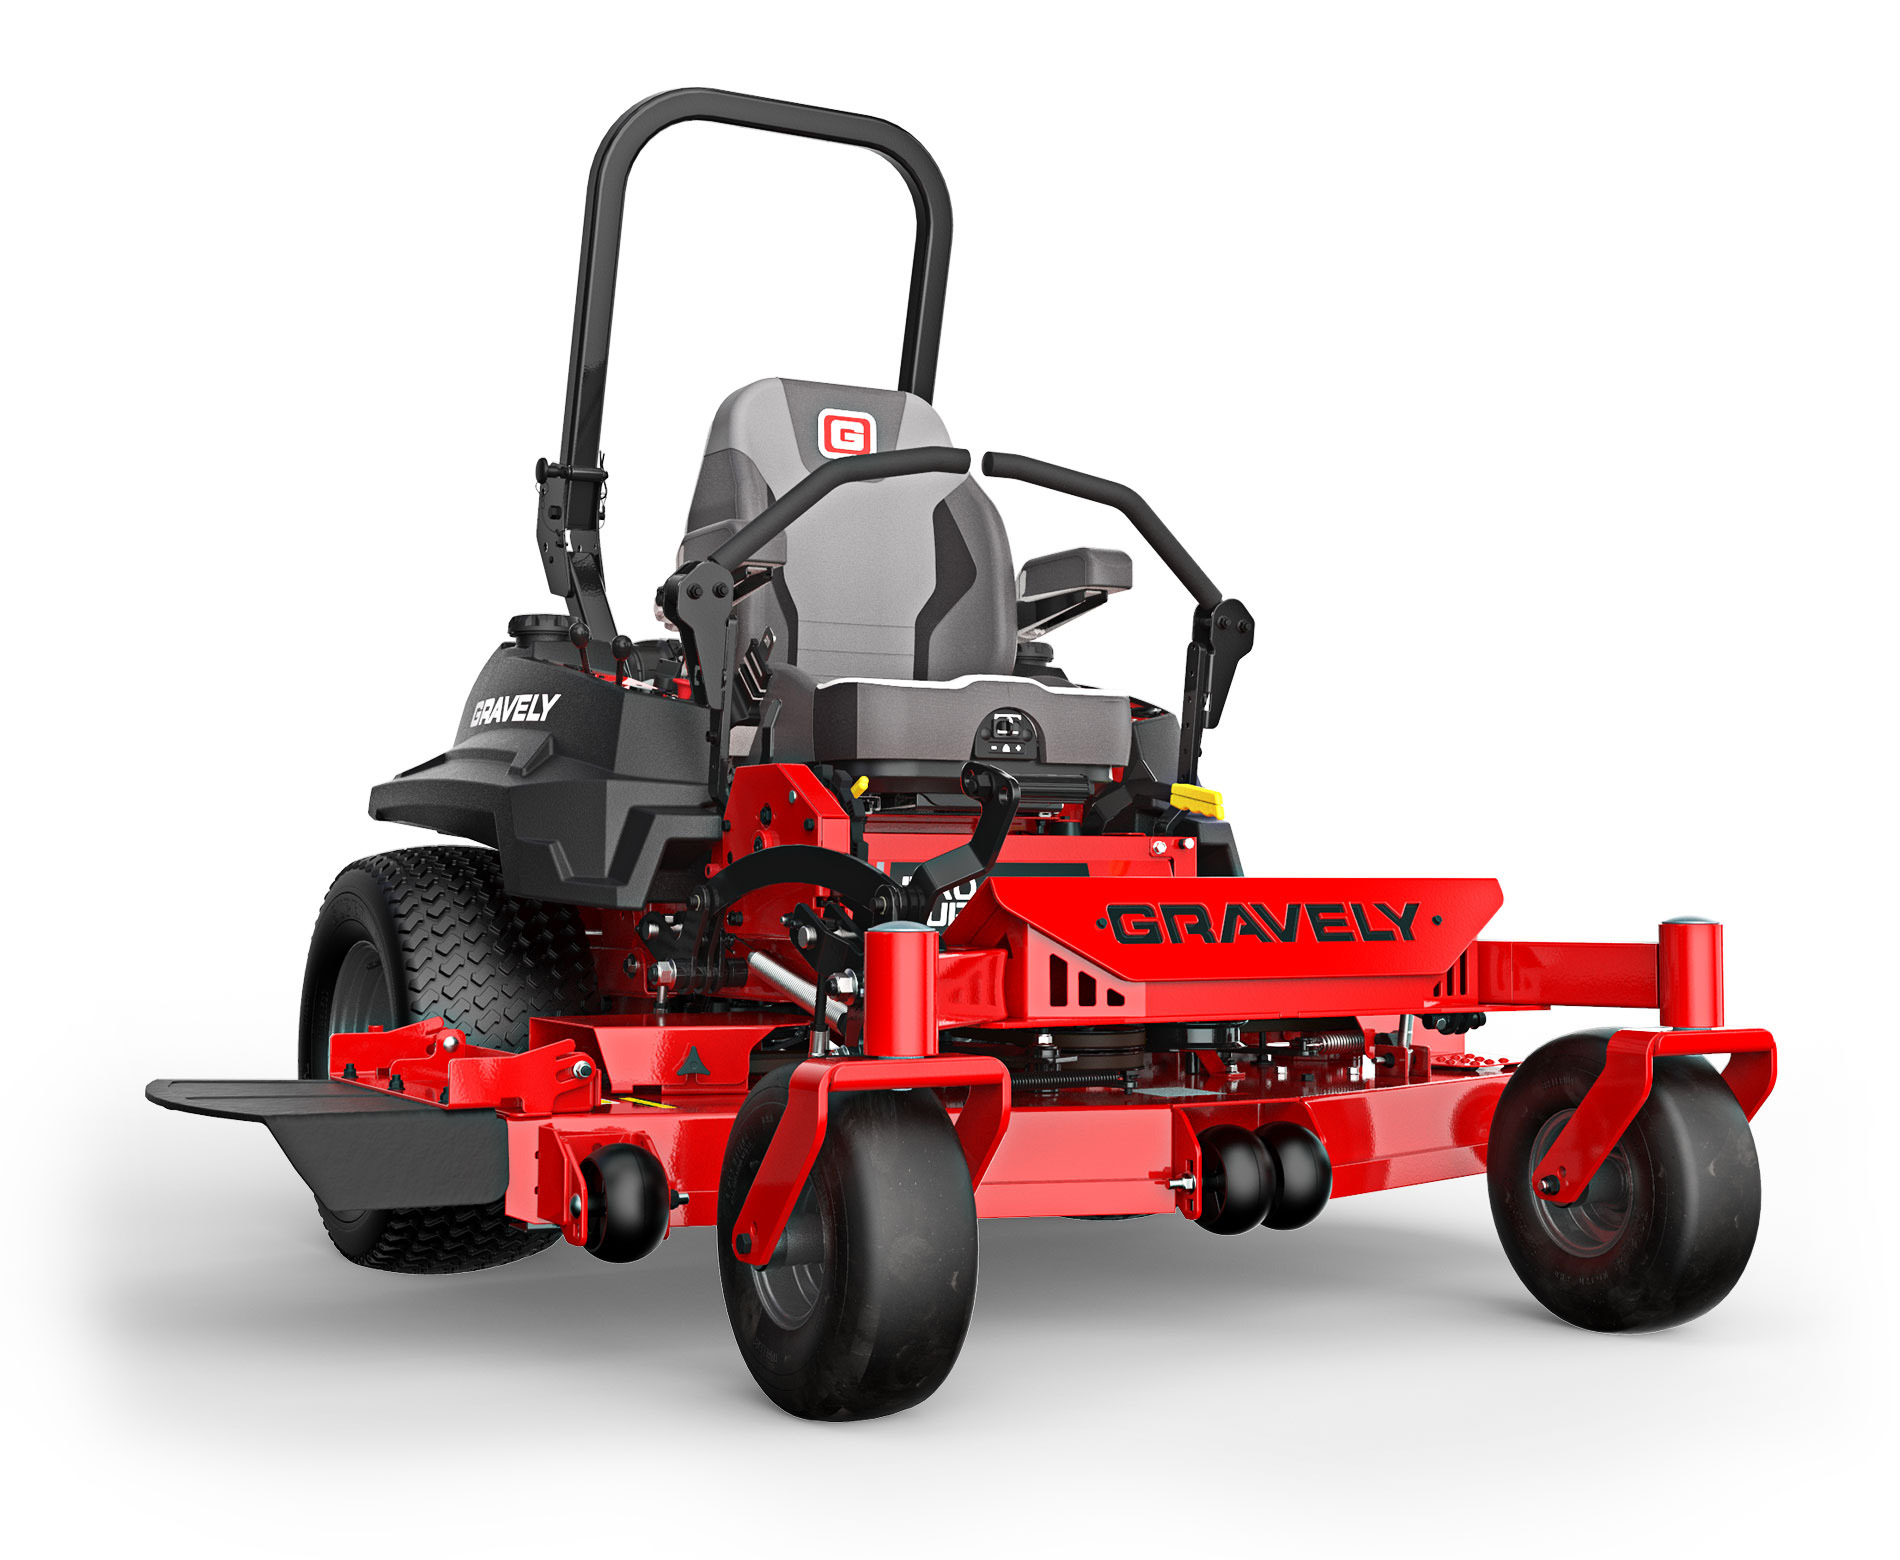 Gravely Pro-Turn 400 mower stock photo